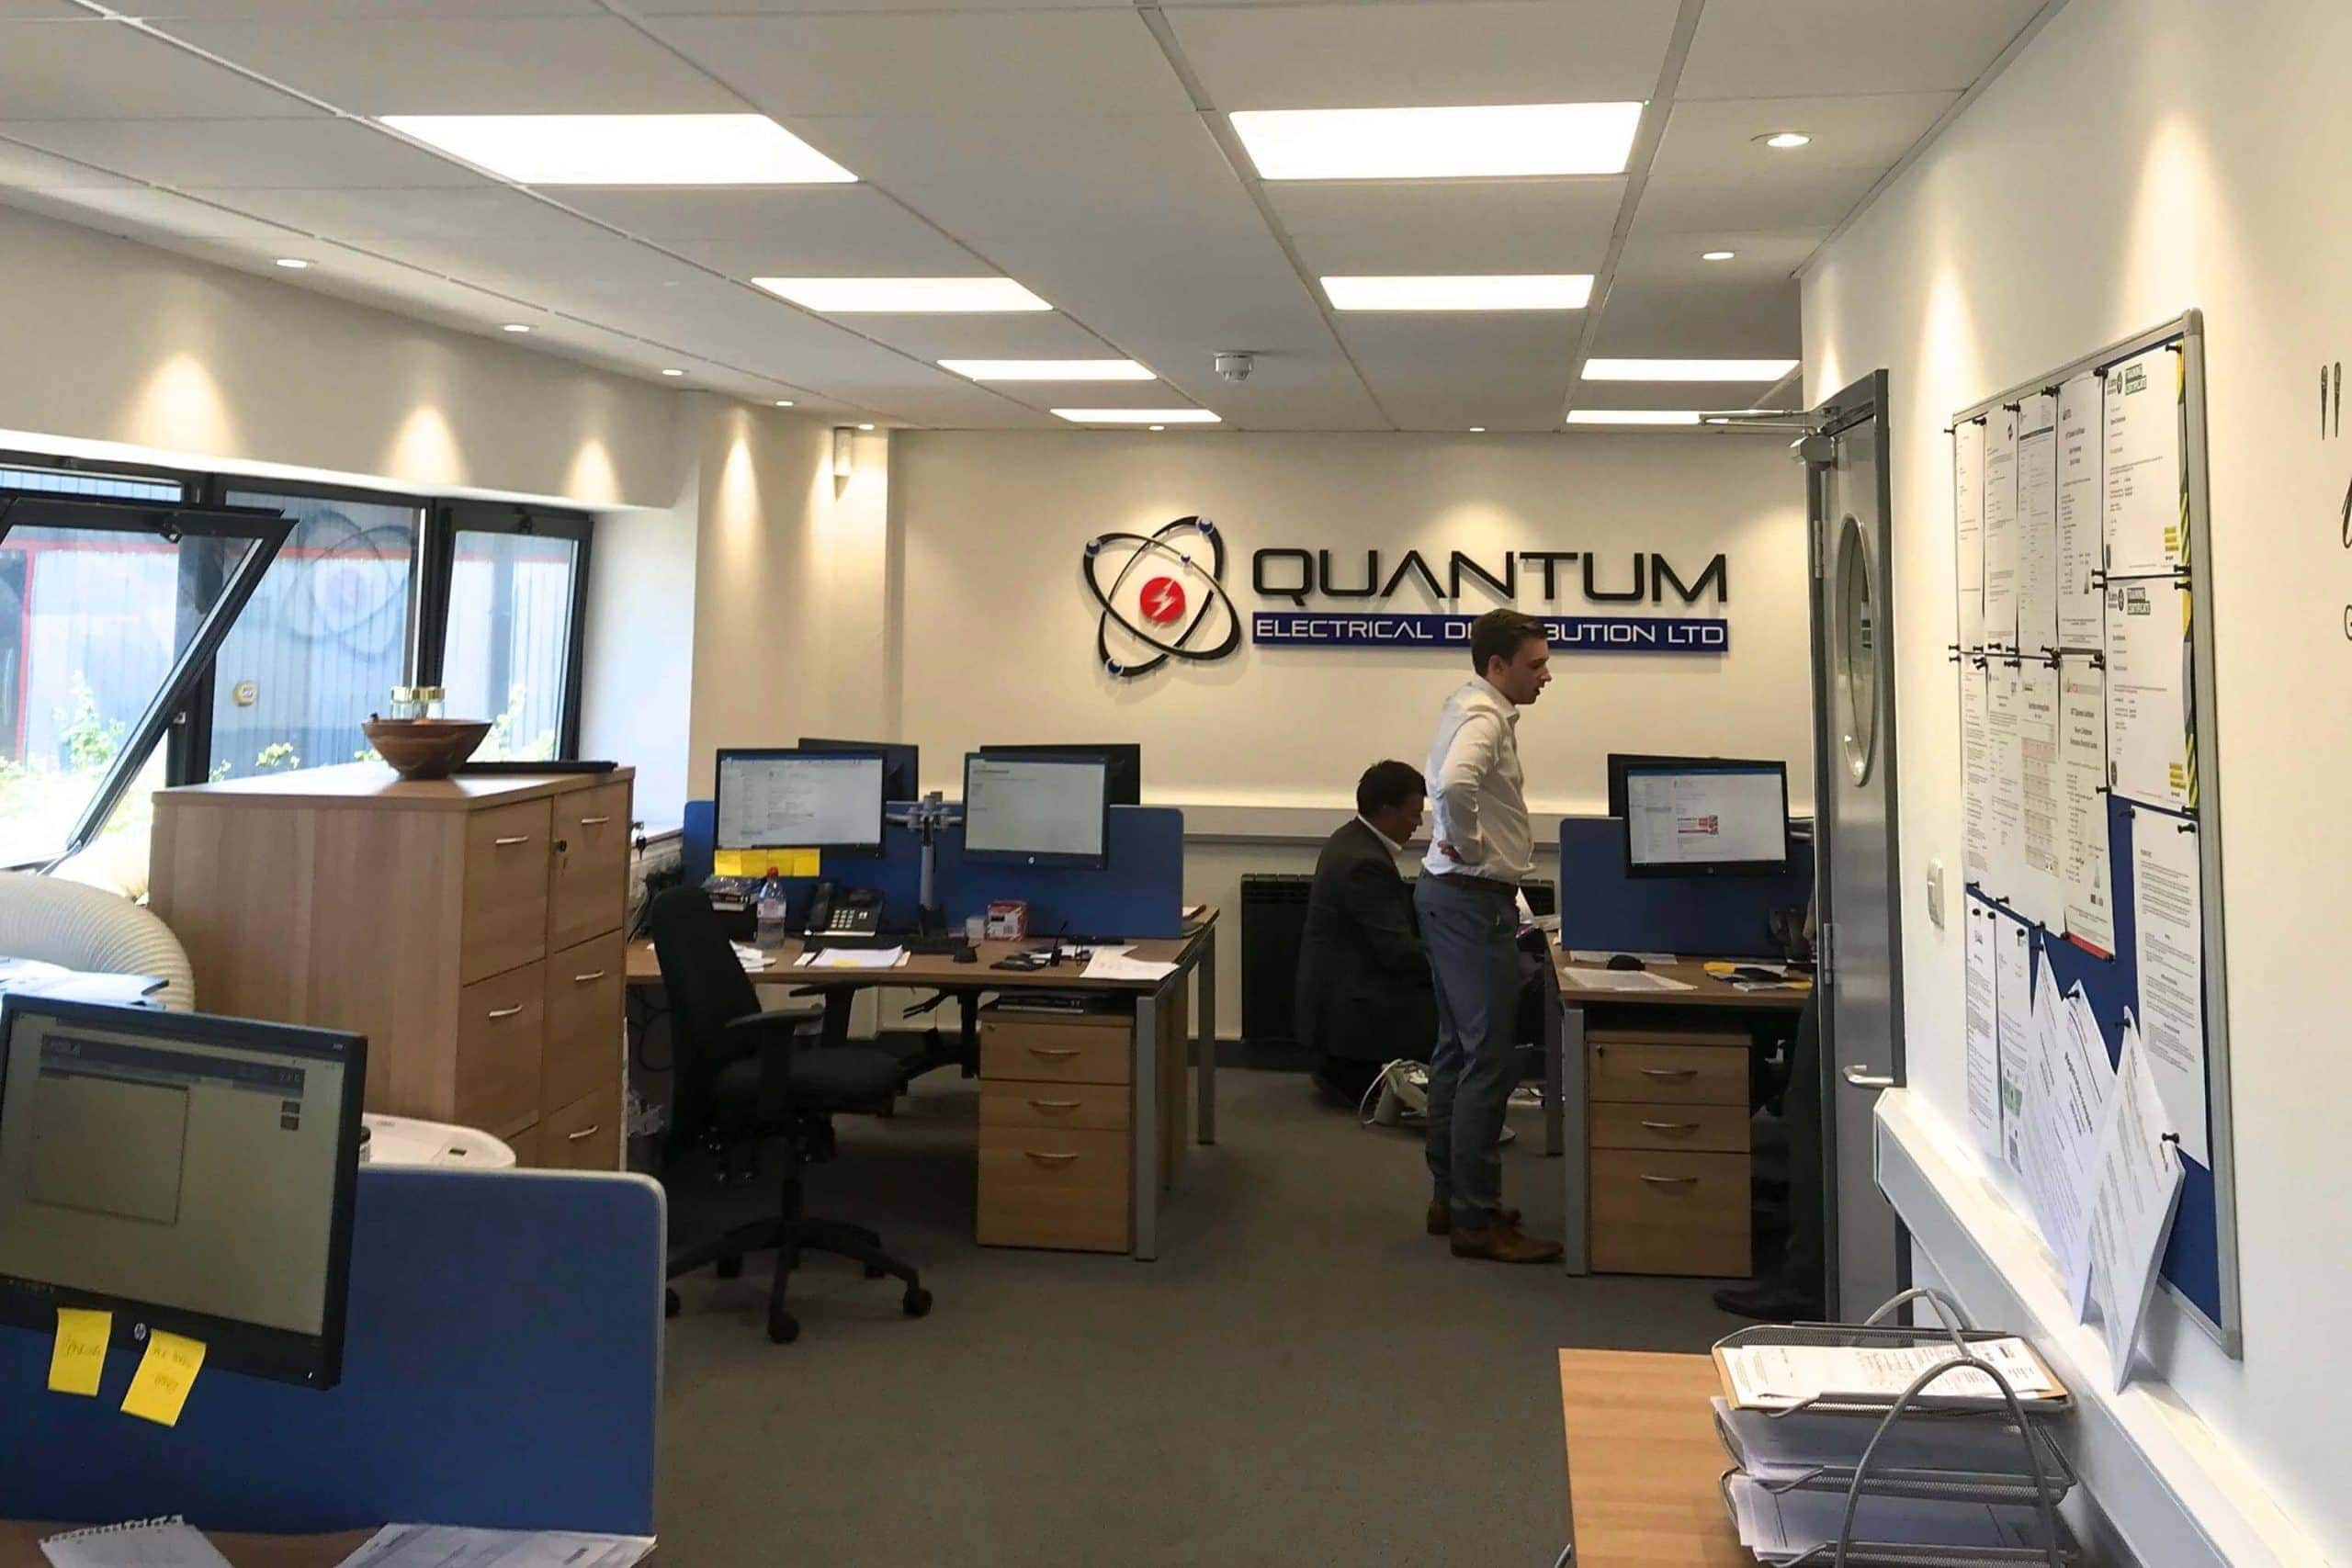 Commercial air conditioning in Quantum Chichester offices